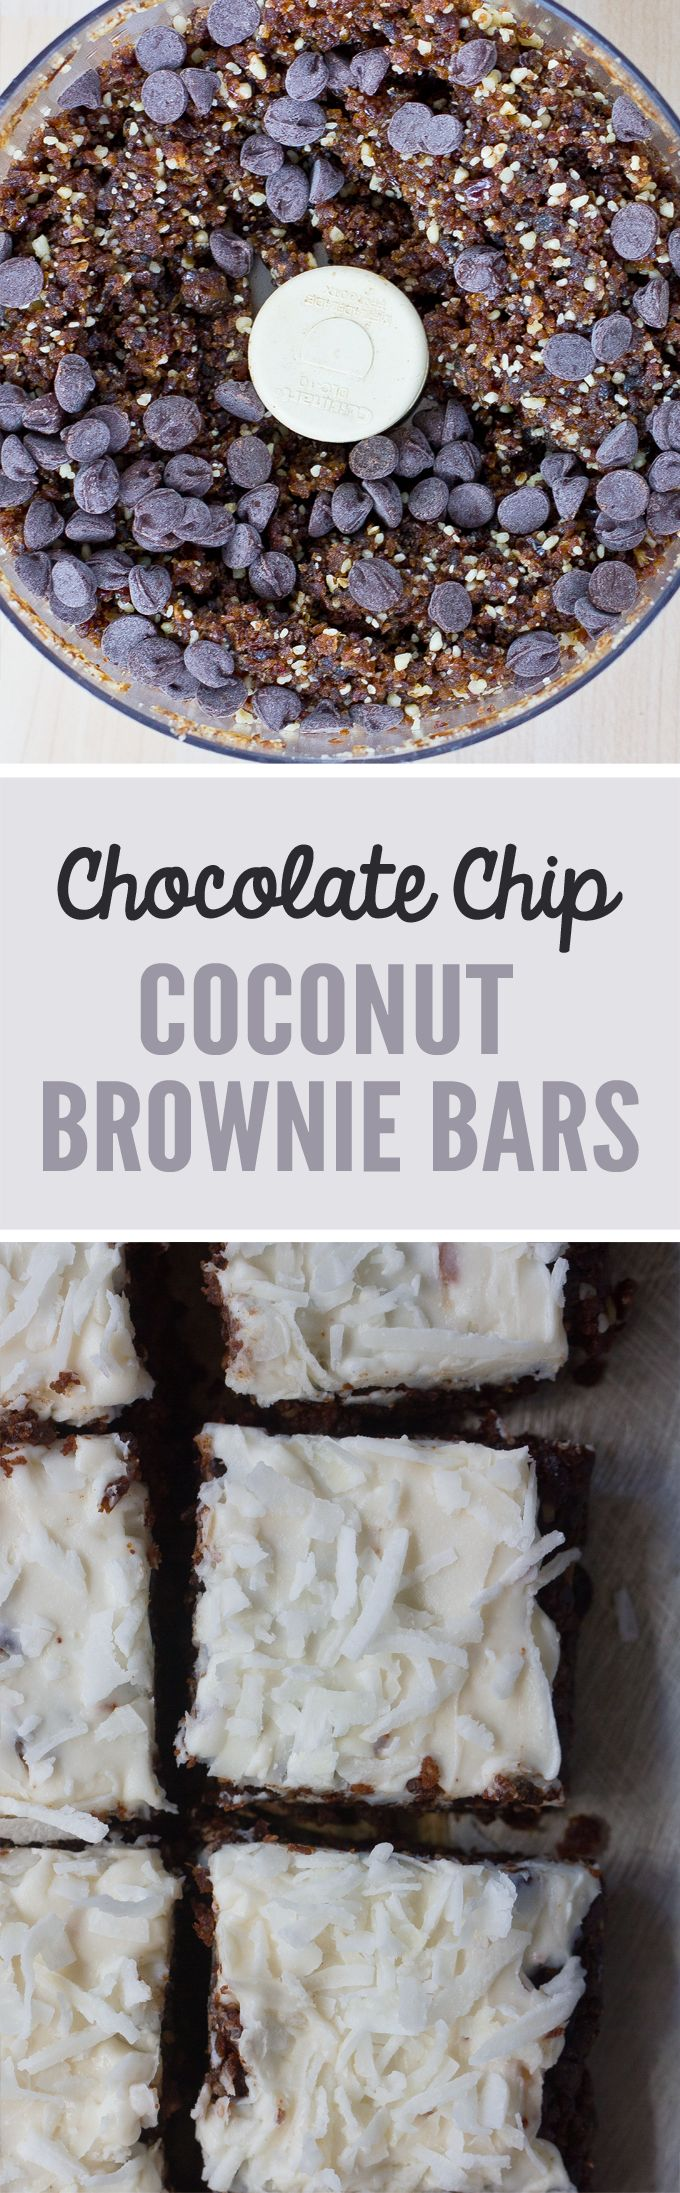 Coconut Brownie Bars - Ingredients: 6 tbsp cocoa powder, 1/2 cup shredded coconut, 1/4 cup... Full recipe: http://chocolatecoveredkatie.com/2016/09/01/coconut-chocolate-chip-brownie-bars-raw-vegan/ @choccoveredkt